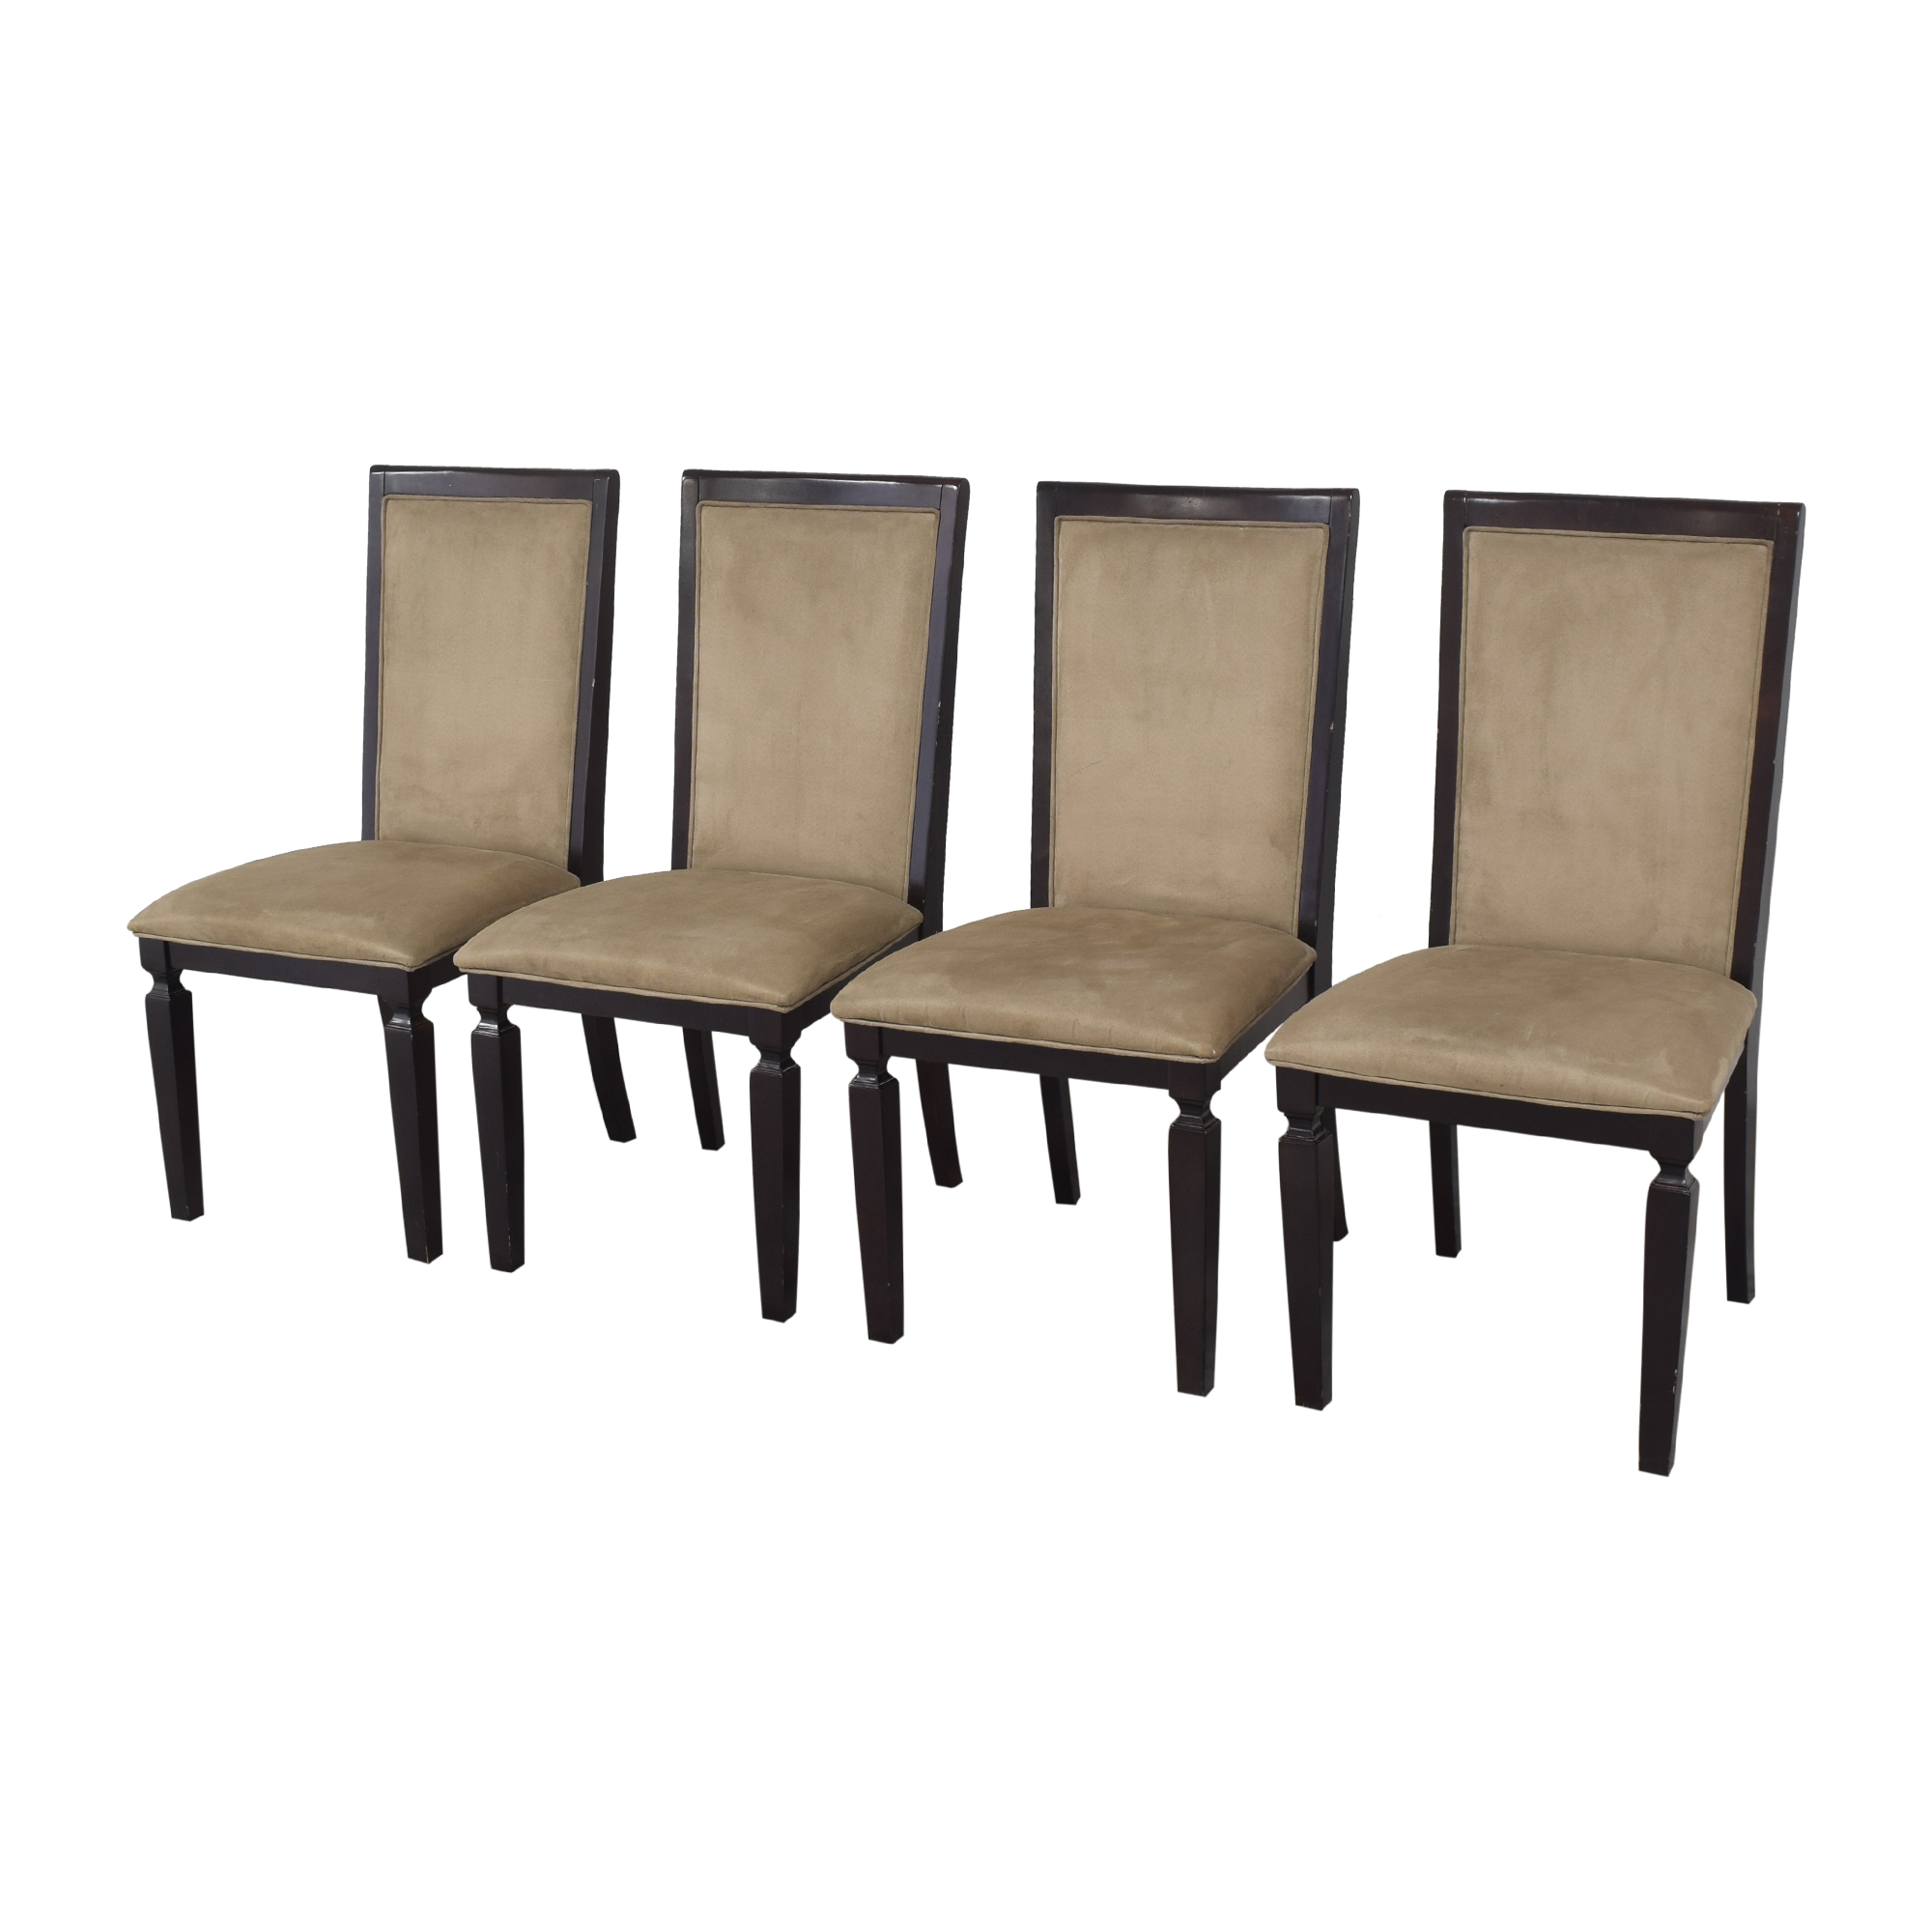 Homelegance Furniture Homelegance Furniture Dining Side Chairs second hand